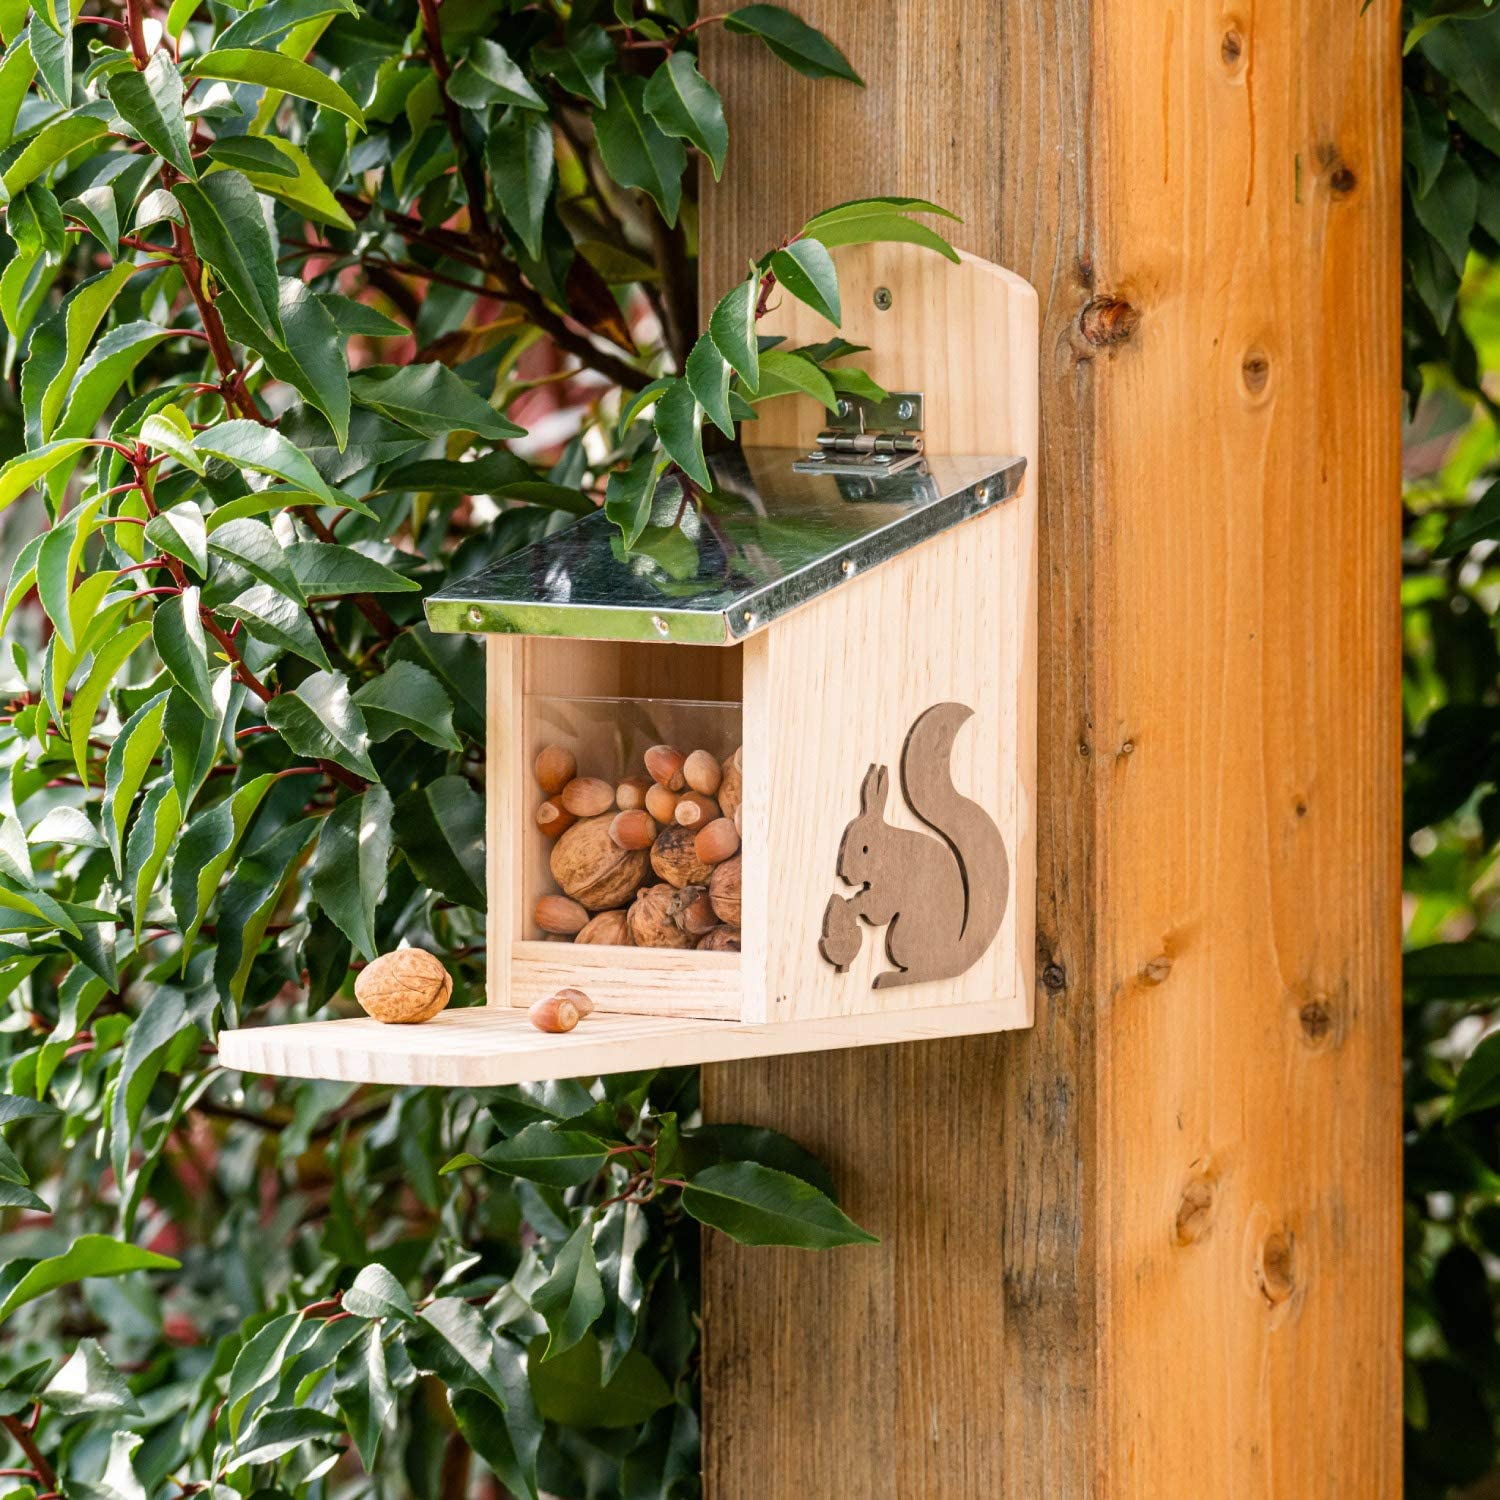 24.5 x 11 x 29cm Wooden Squirrel Feeder Weatherproof Natural Hanging Feeding Station With Metal Roof Ideal For Any Size Garden Or Balcony